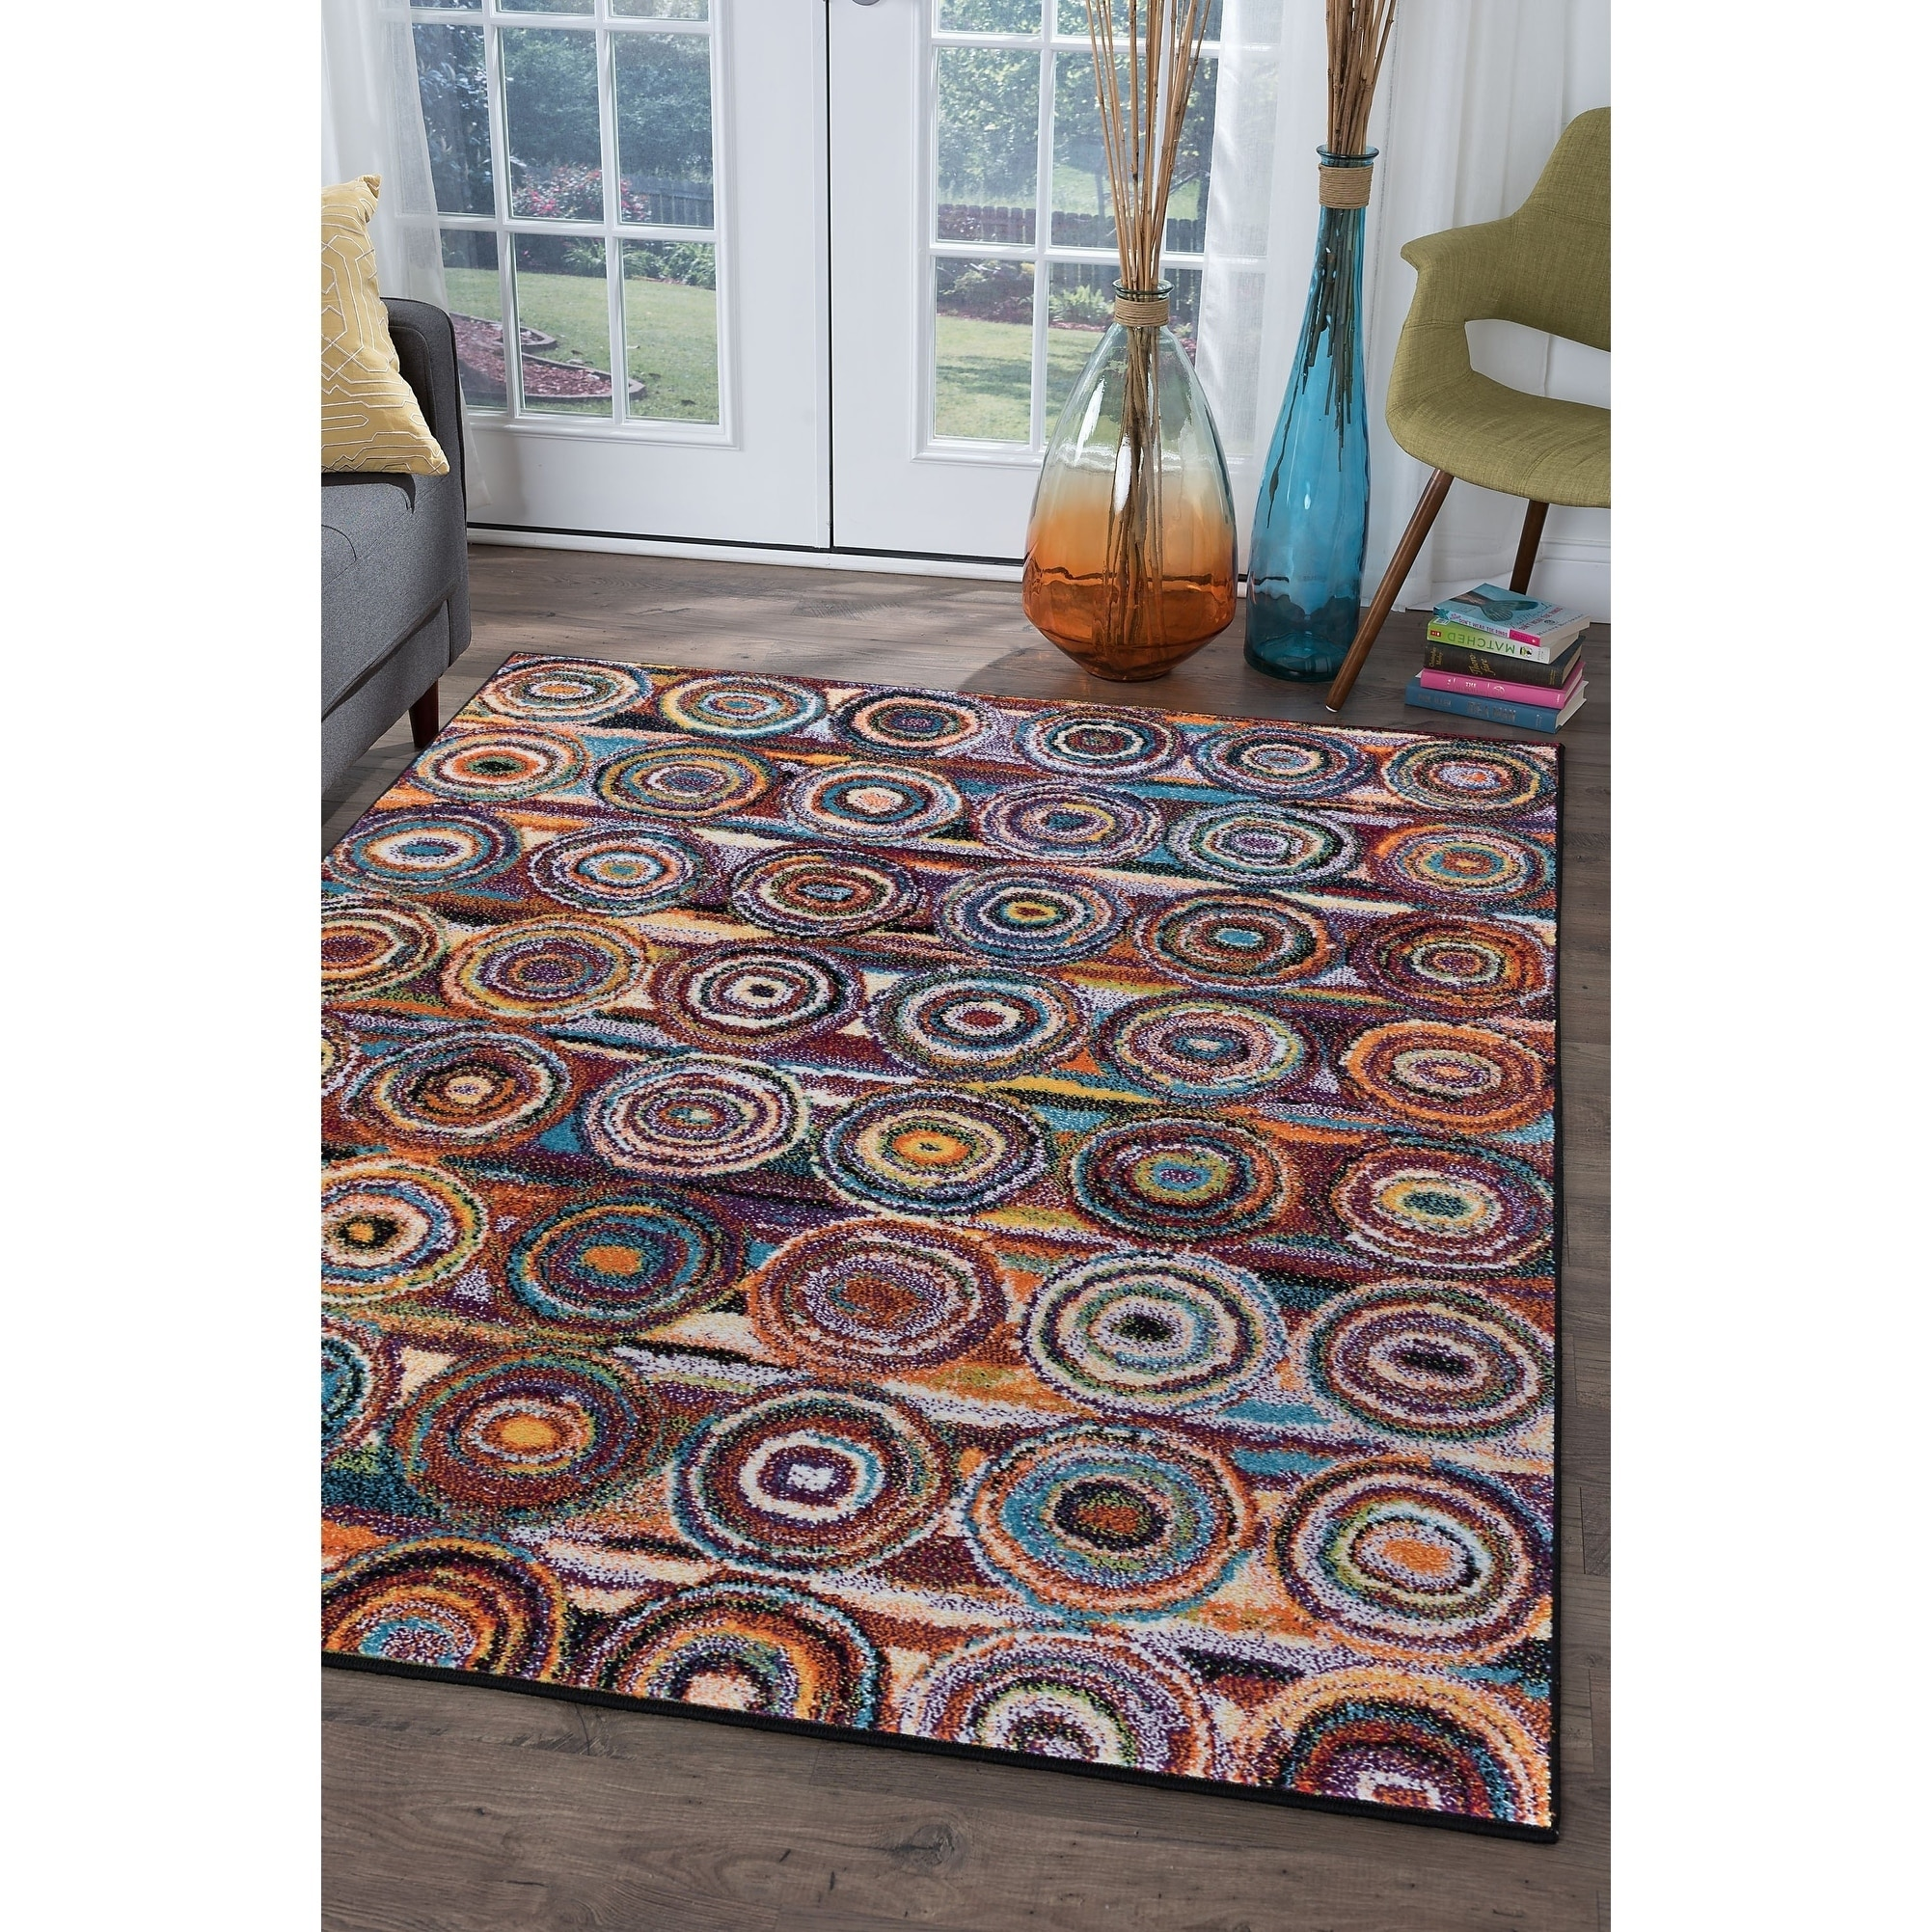 Alise Rugs Rhapsody Contemporary Circles Area Rug - multi - 53 x 73 (53 x 73 - Moderate Traffic)